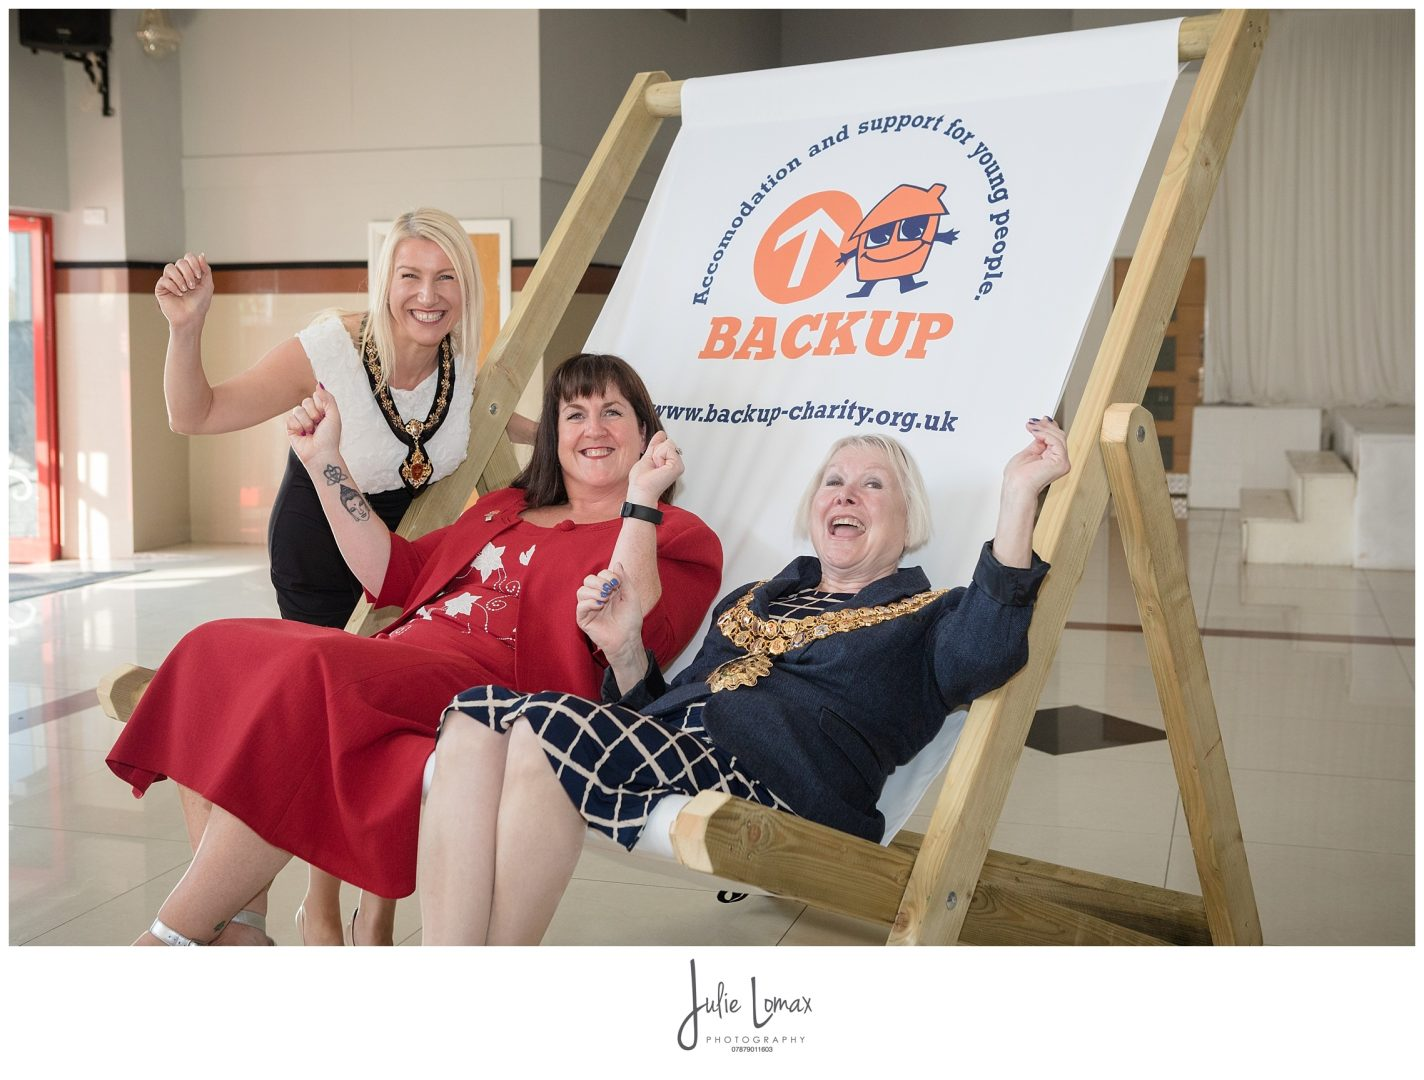 Backup AGM and rebrand event!